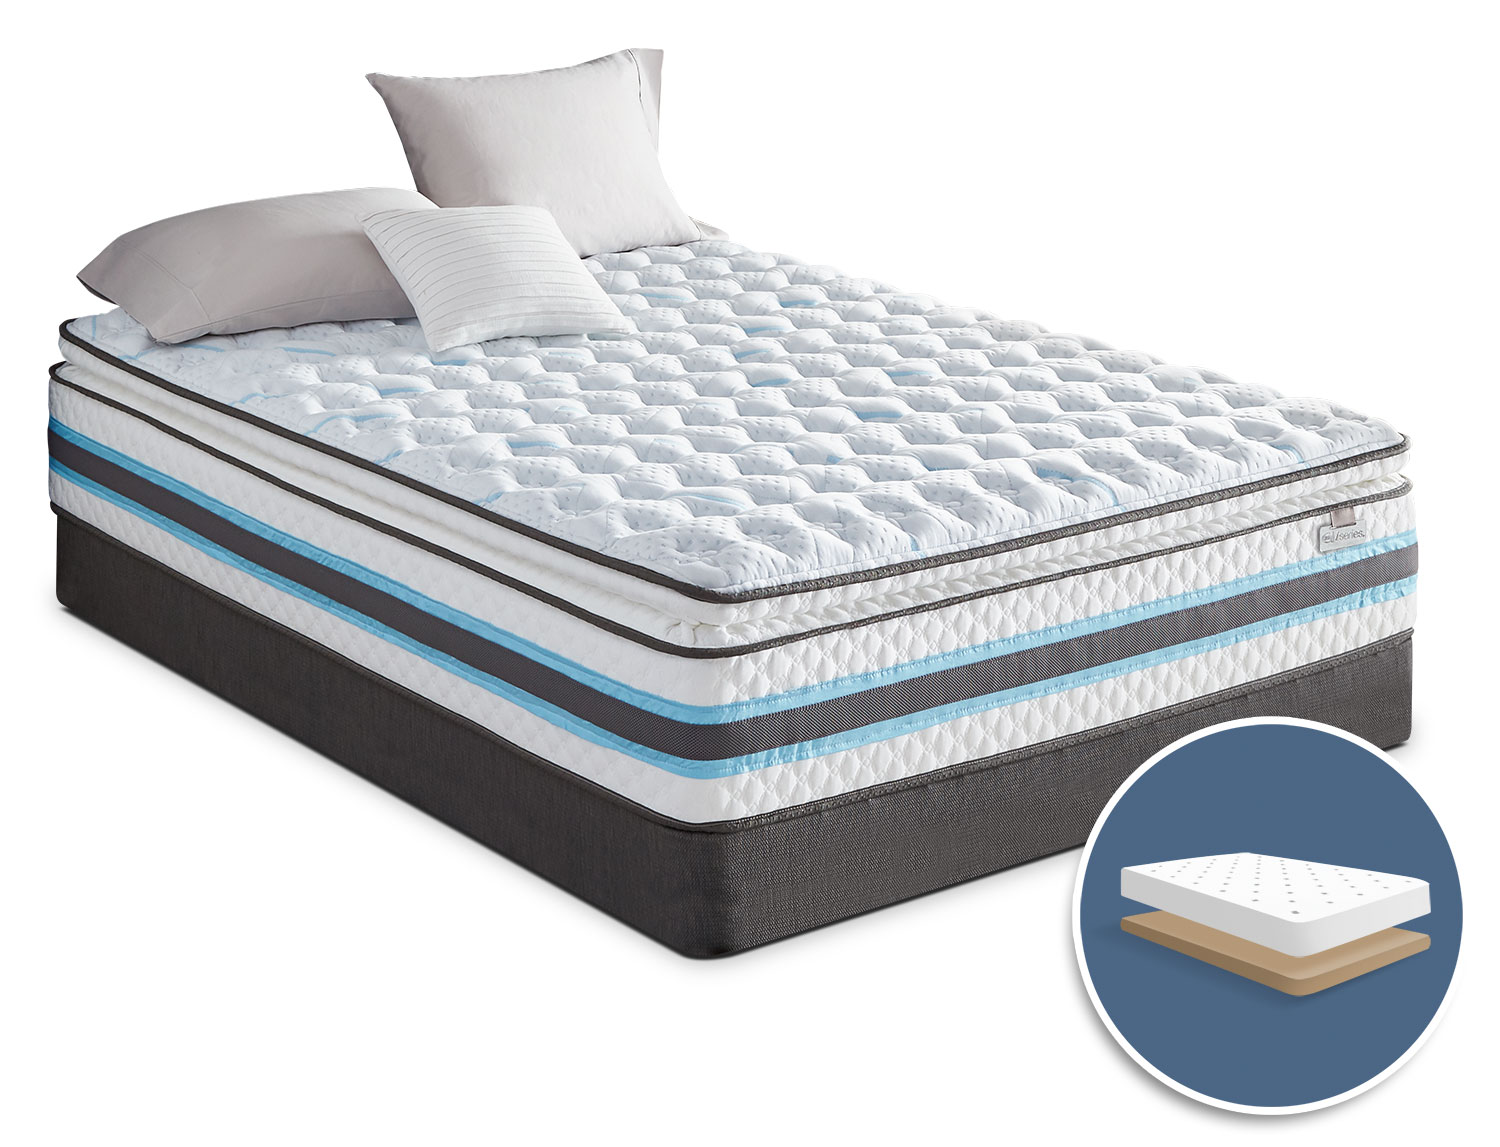 Mattresses and Bedding - Serta iSeries® Breathtaking Pillow-Top Firm Low-Profile Queen Mattress Set